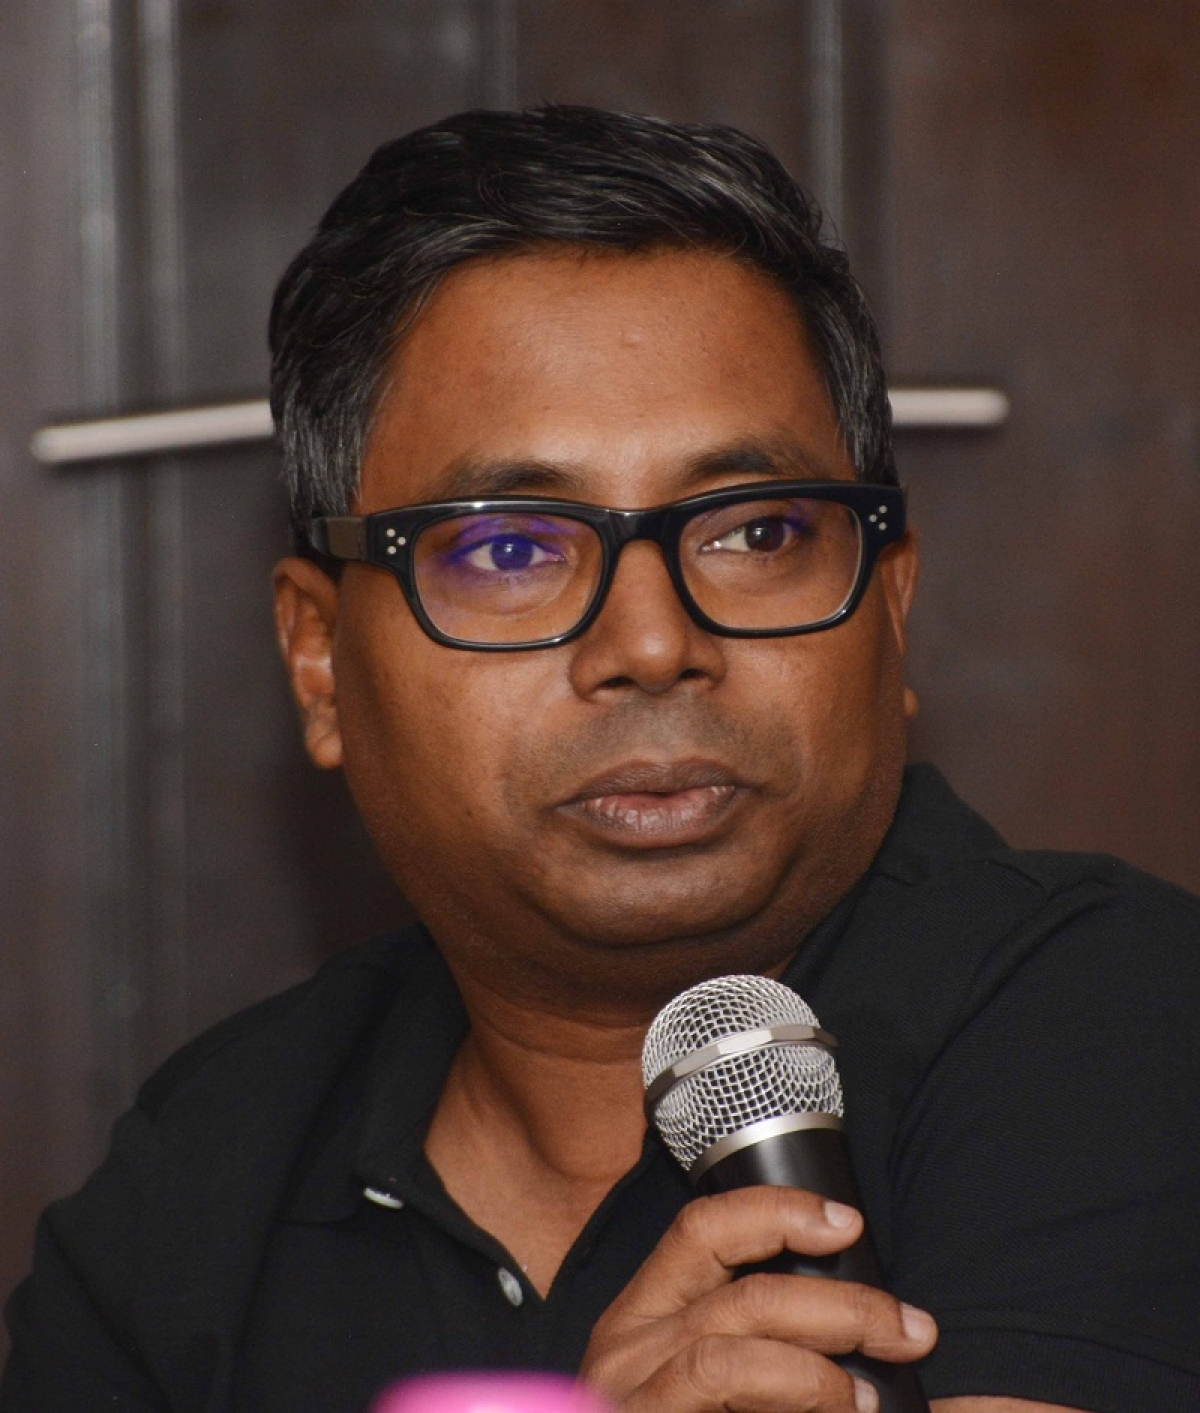 'Film making is a collective effort and not just what the director thinks', 'Raid' director Raj Kumar Gupta